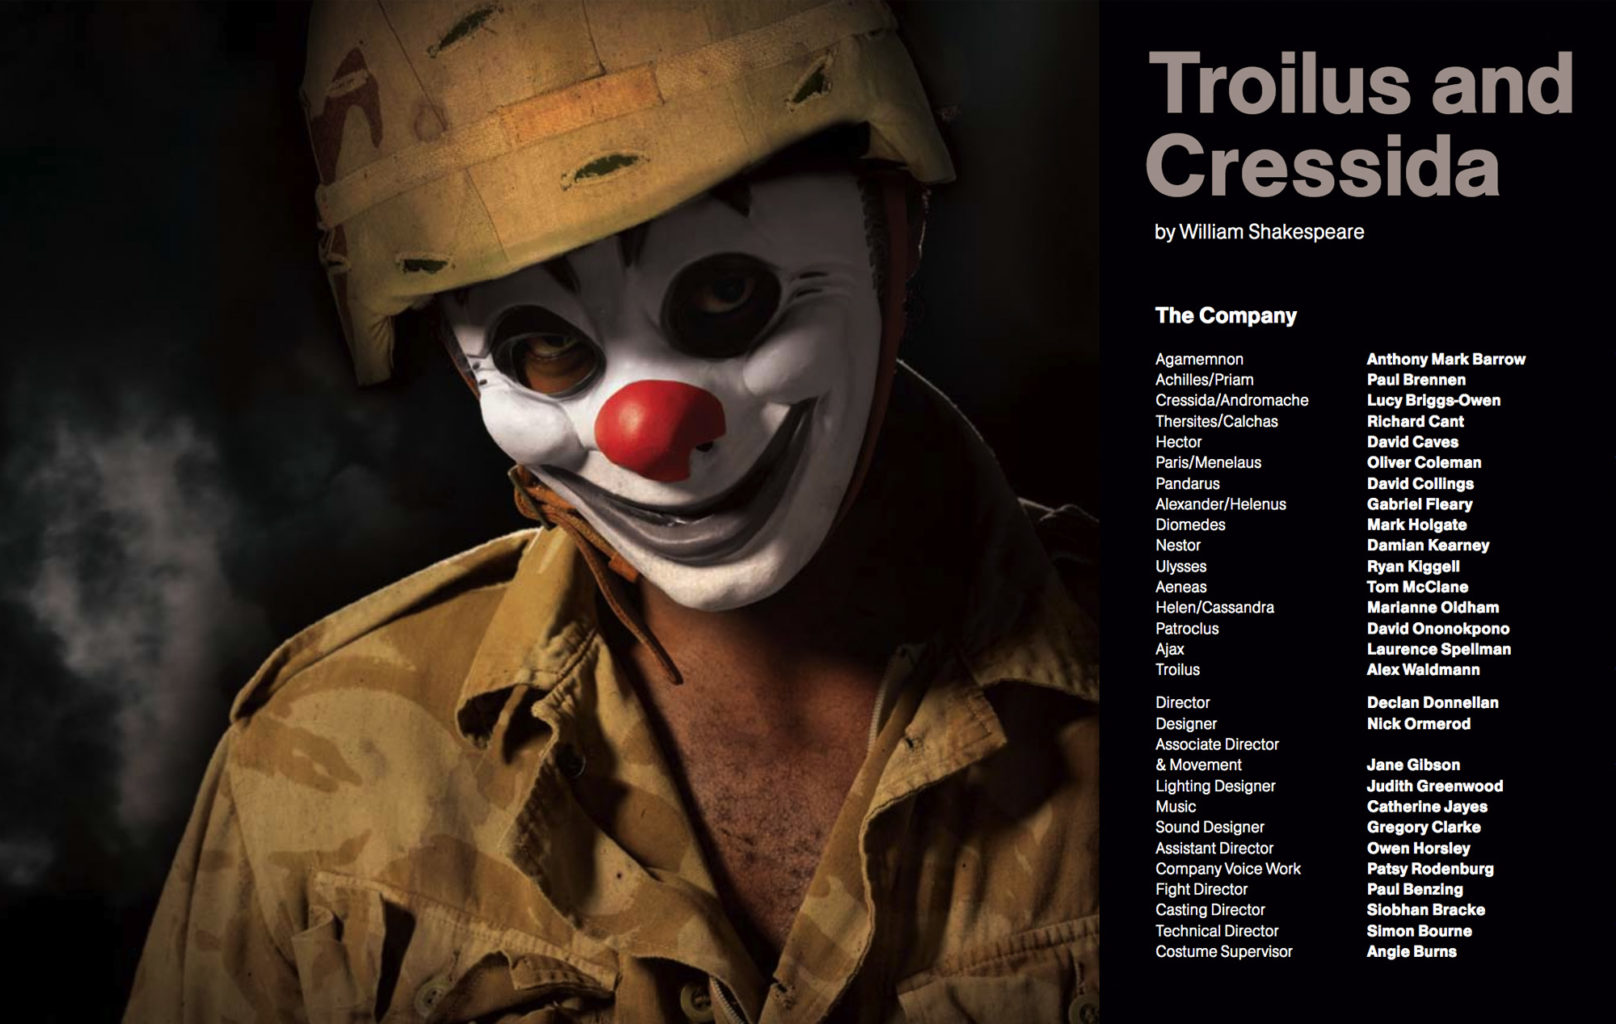 The production programme for Cheek by Jowl's 2008 production of Troilus and Cressida